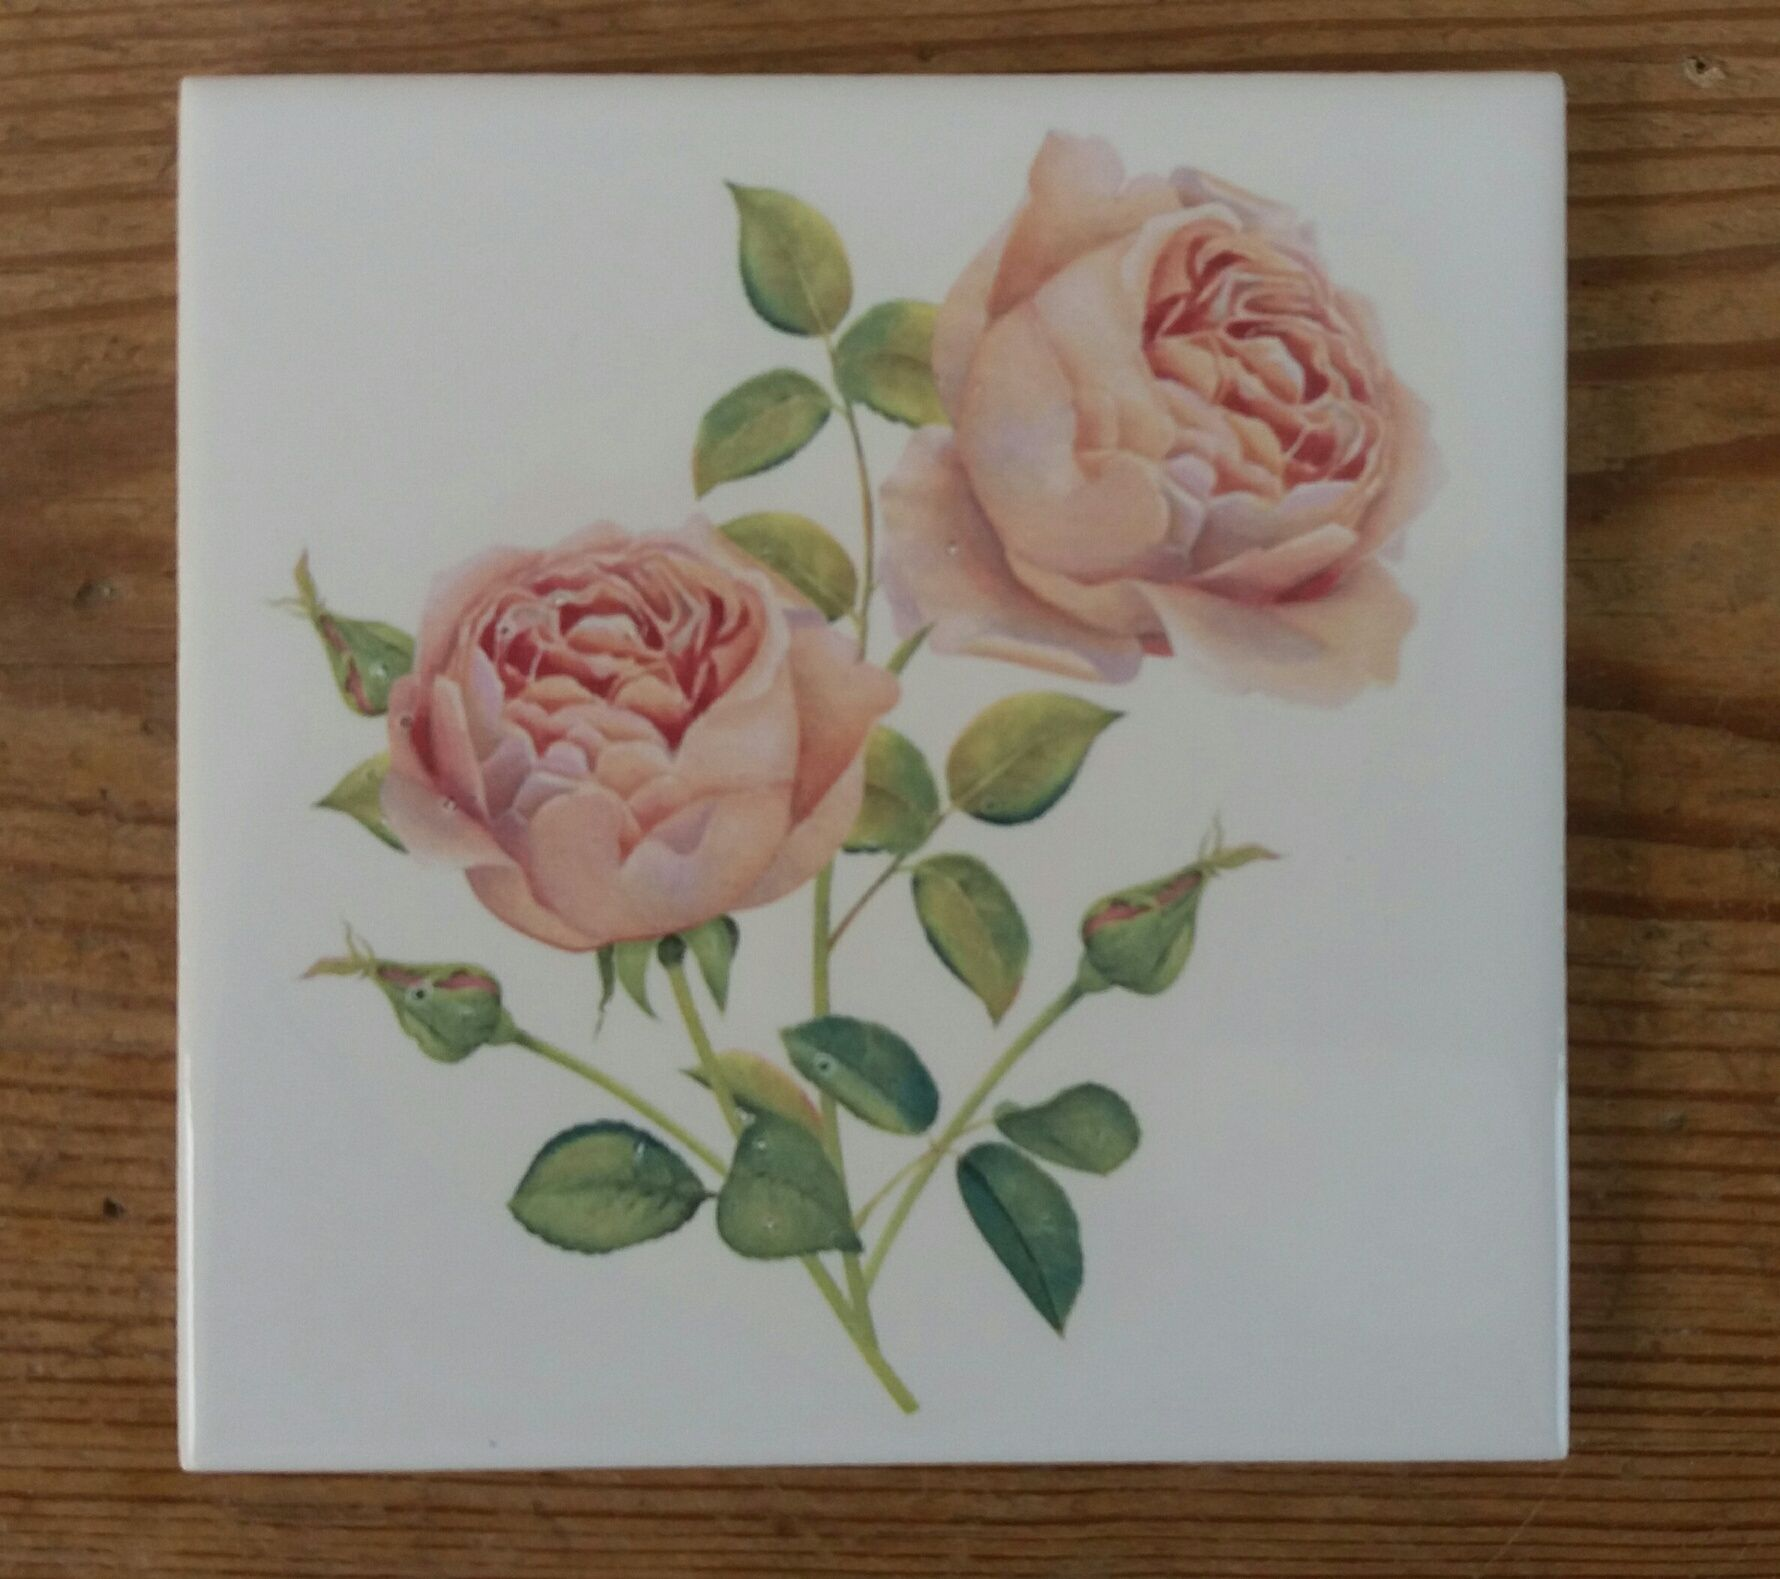 Hand Painted Decorative Ceramic Picture Tiles Magnificent Decorative Ceramic Wall Tile With Pink Rosesfloral Tiles Review